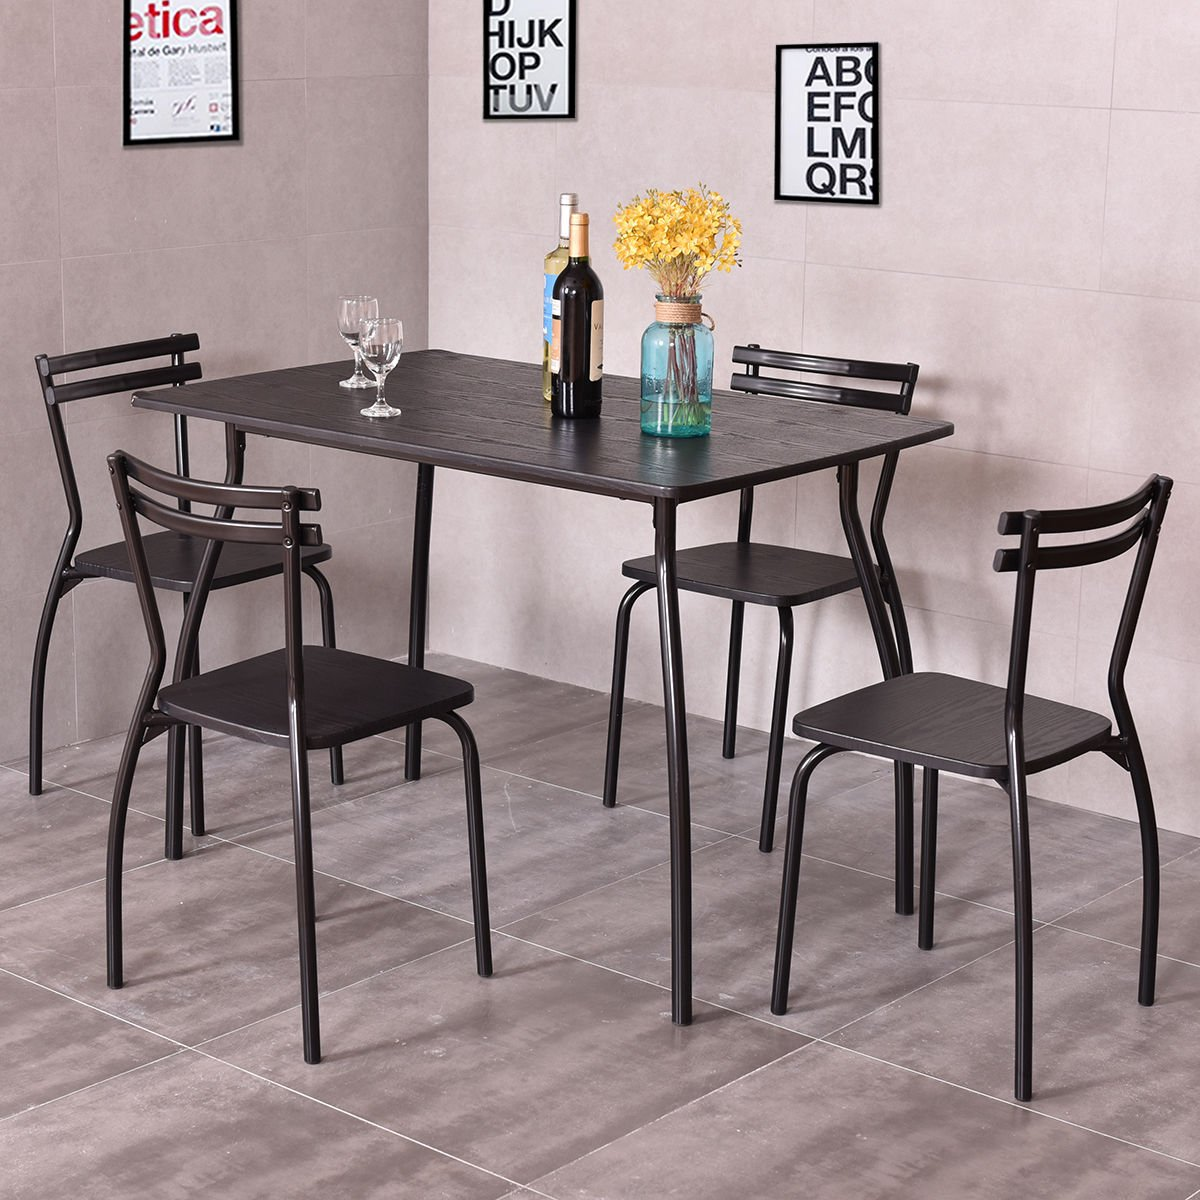 Sturdy 5 piece dining set includes table and 4 armless chairs with ergonomic back home kitchen room breakfast furniture durable and reliable